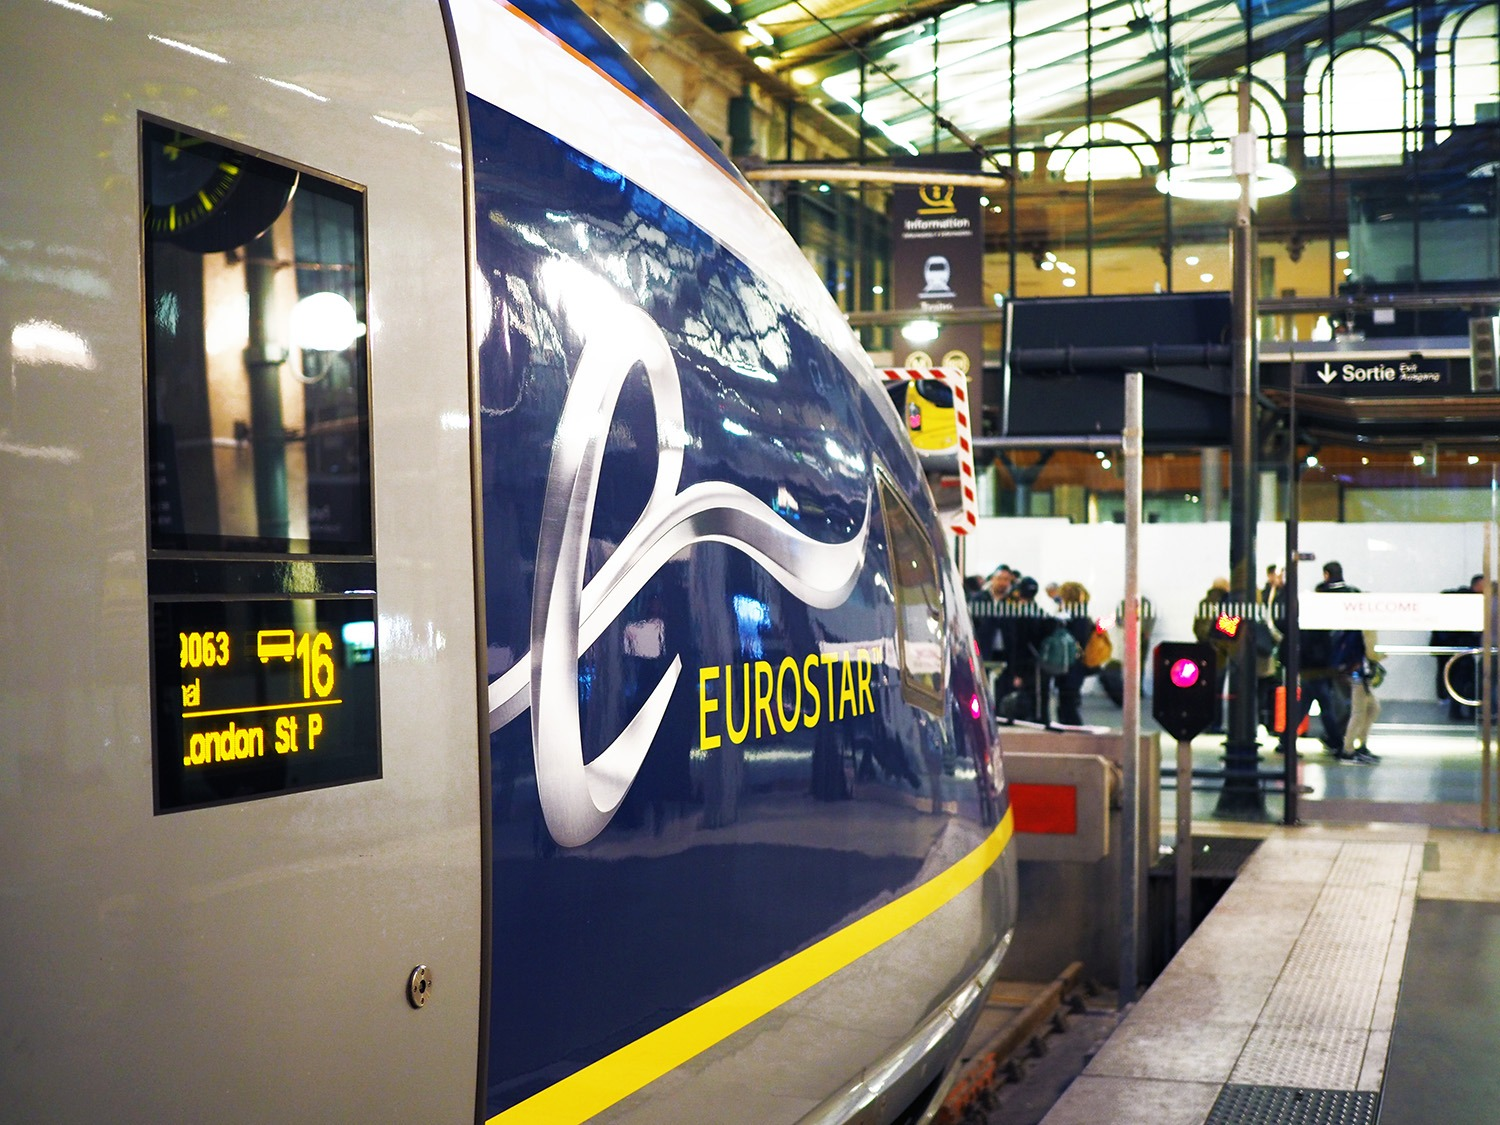 Paris Train Taking The Eurostar From Paris To London To Europe And Beyond